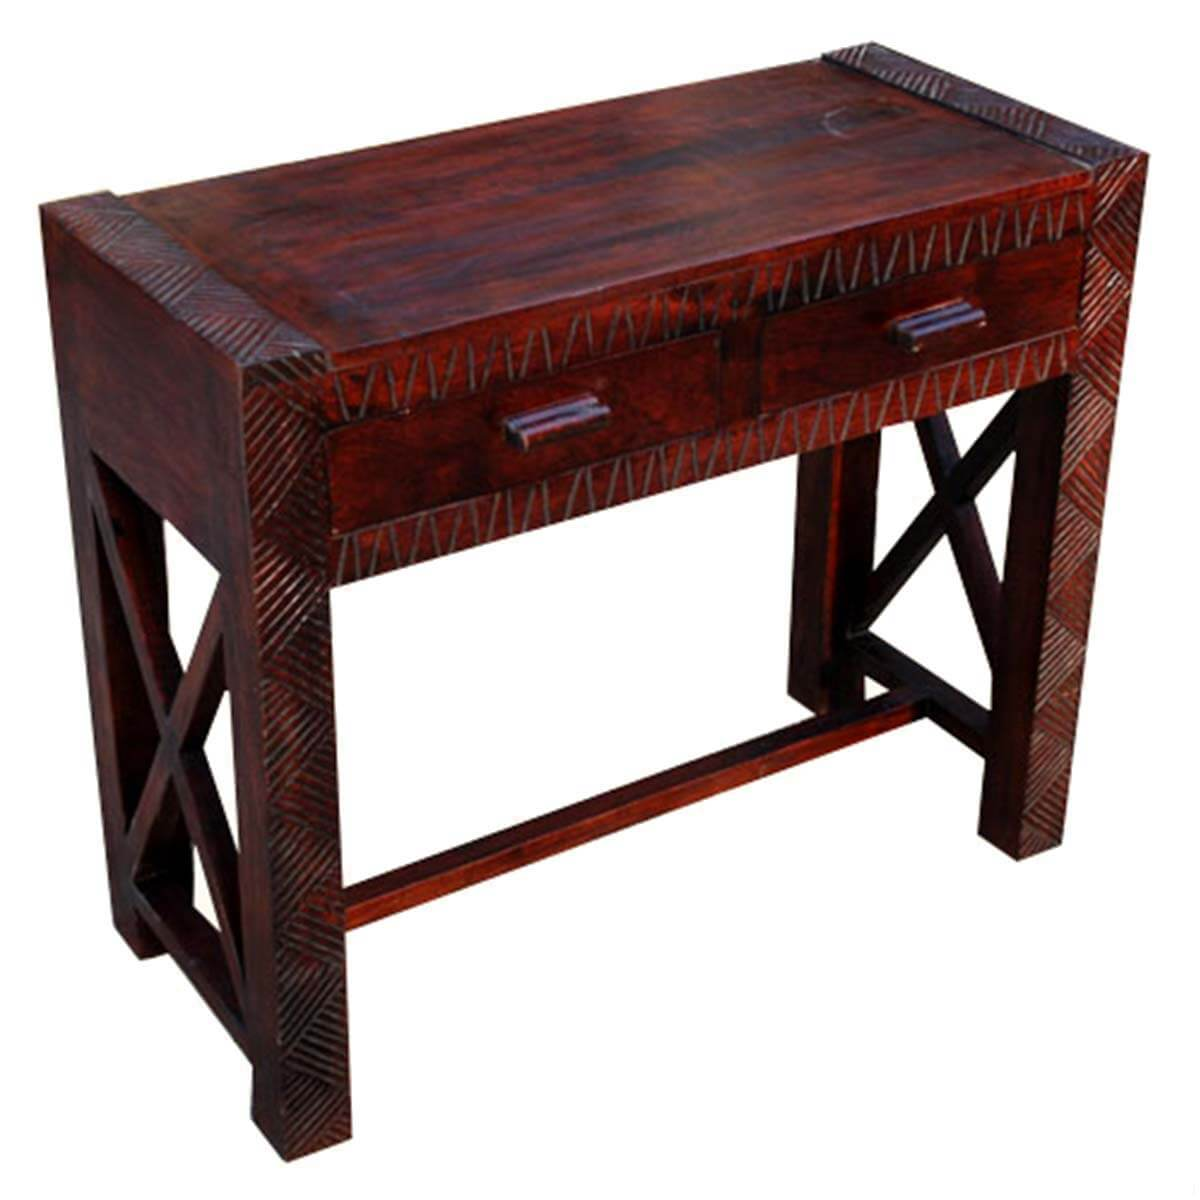 Solid wood entryway hand carved console table